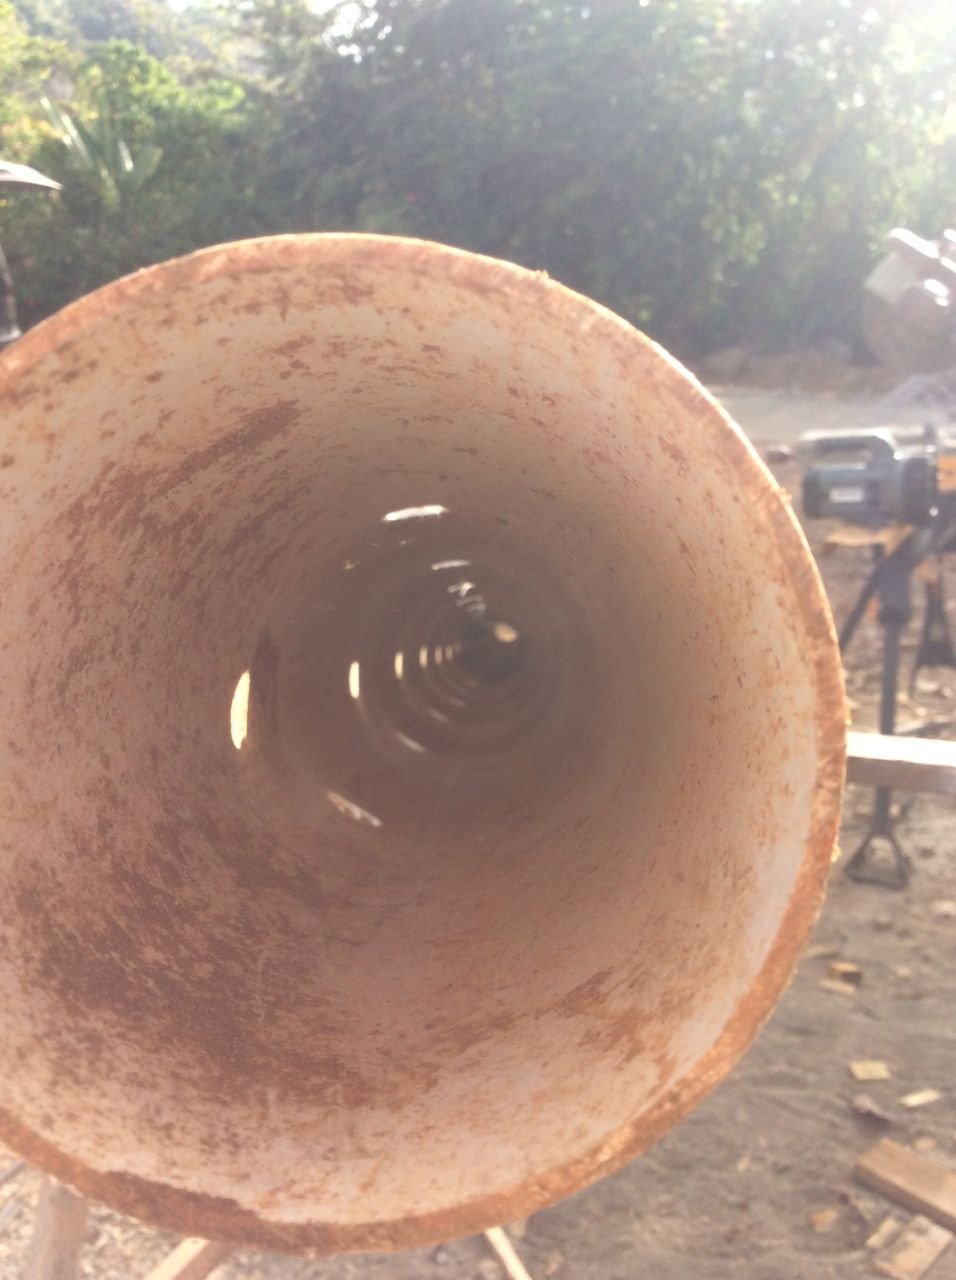 Inside of perforated pipe